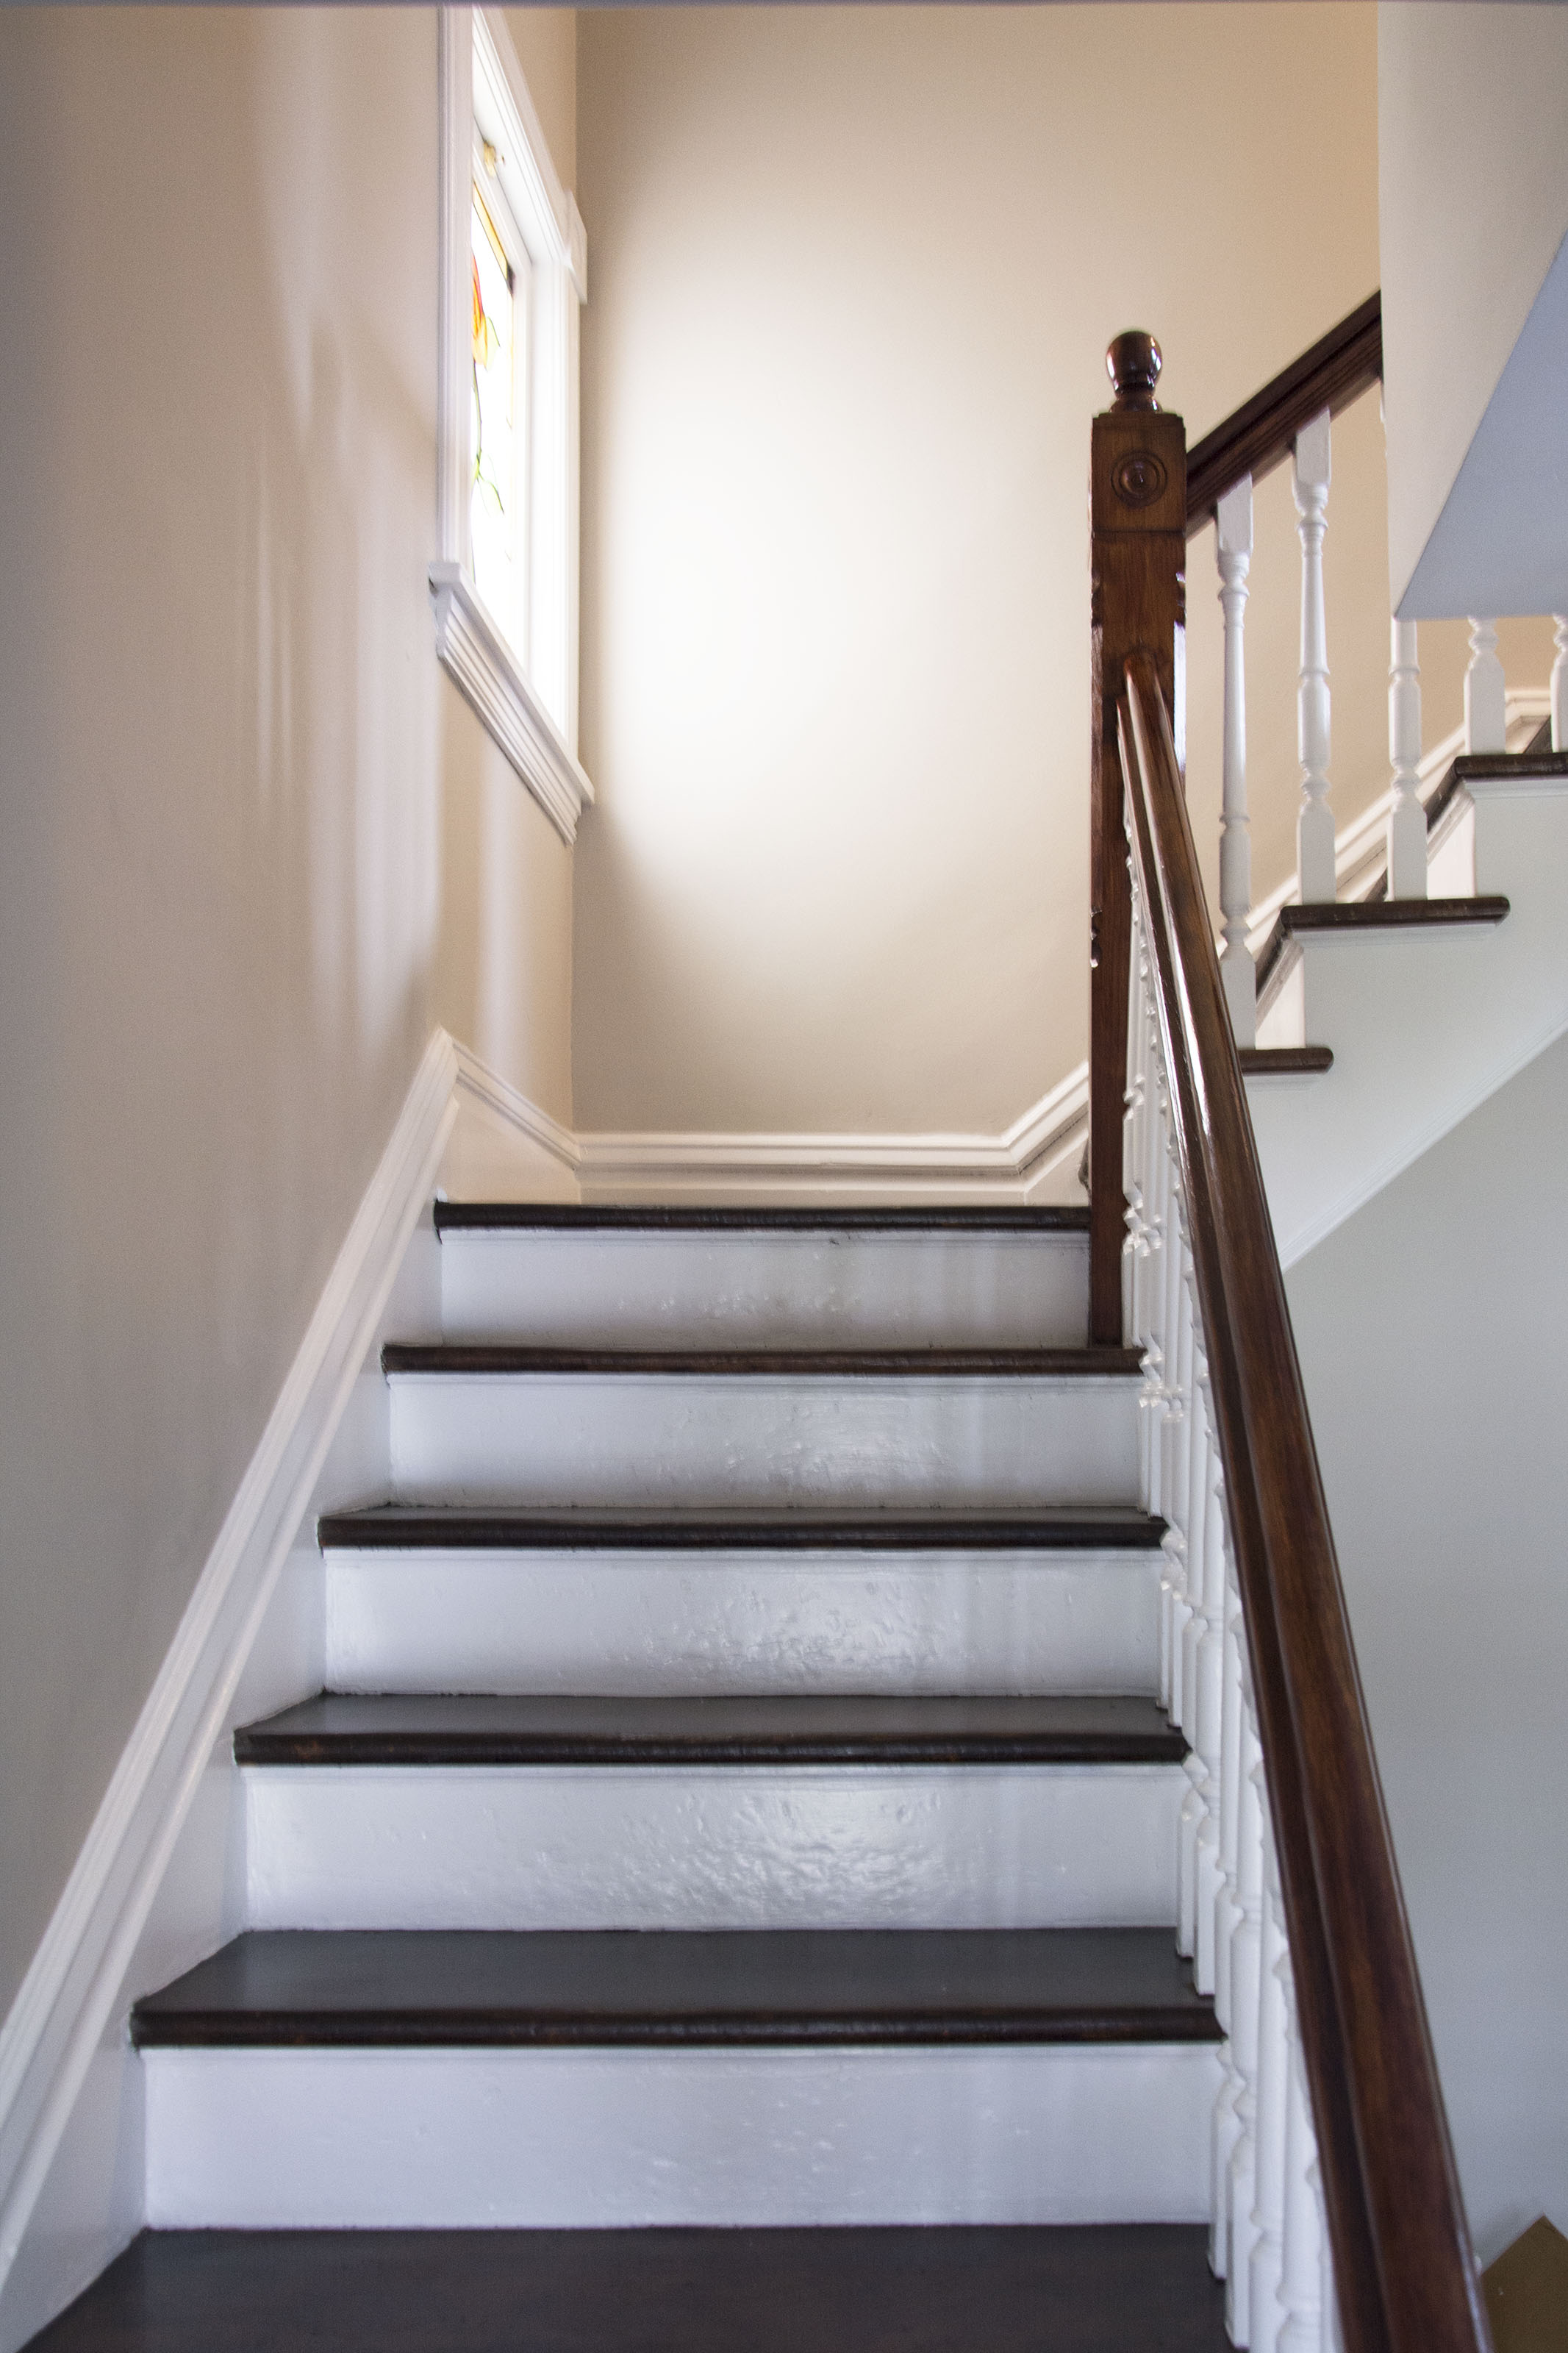 Tops of the stairs: Graphite 1603 by BM